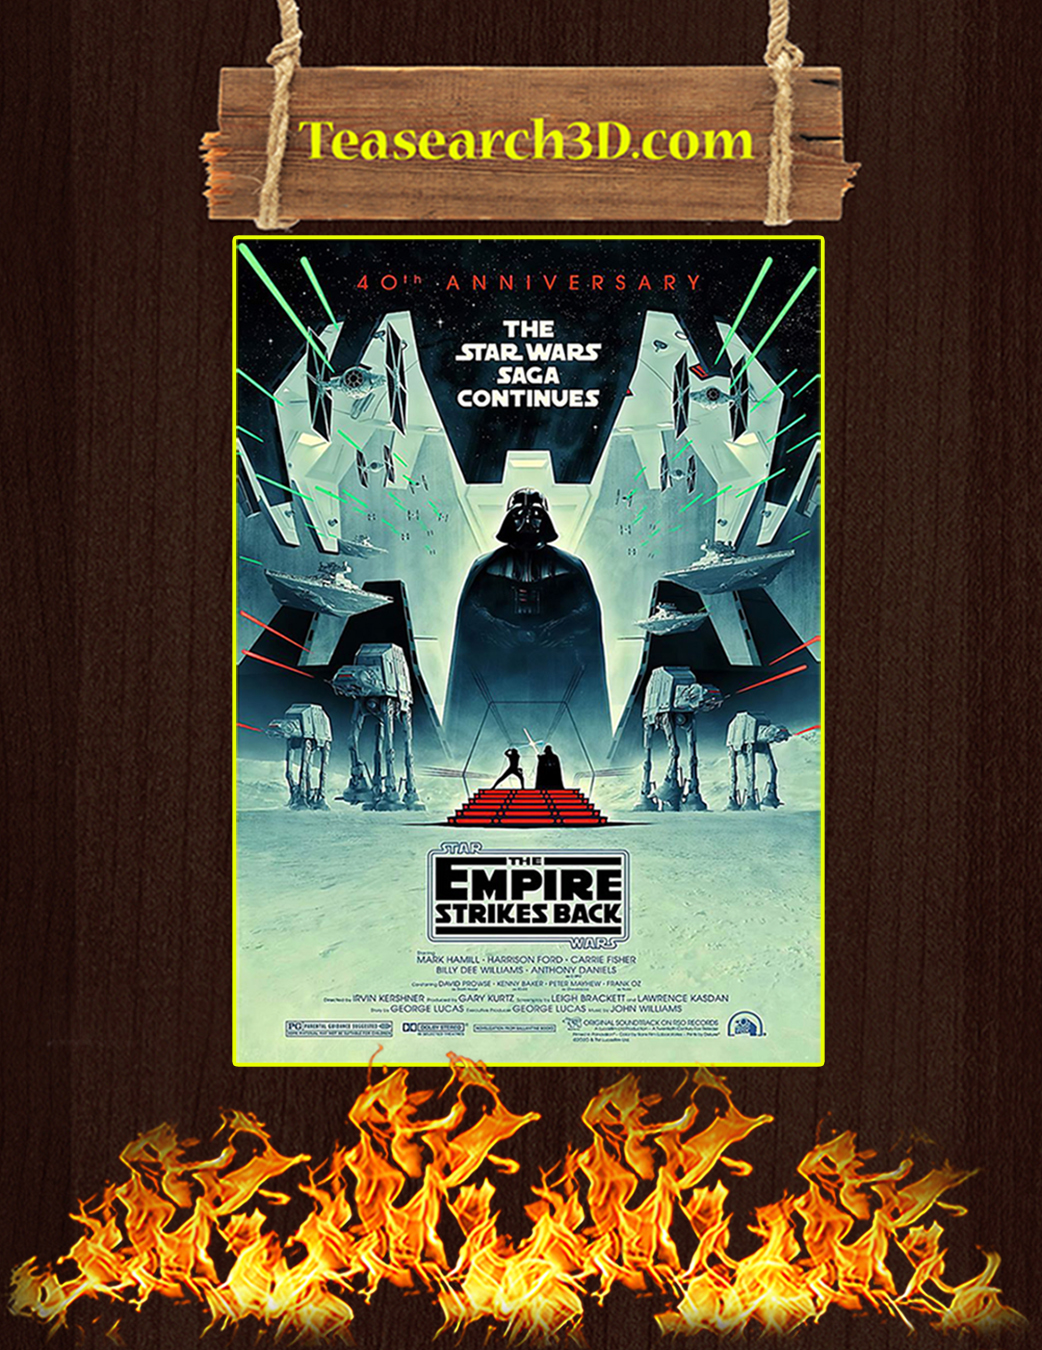 The star wars saga continues 40th anniversary poster A1